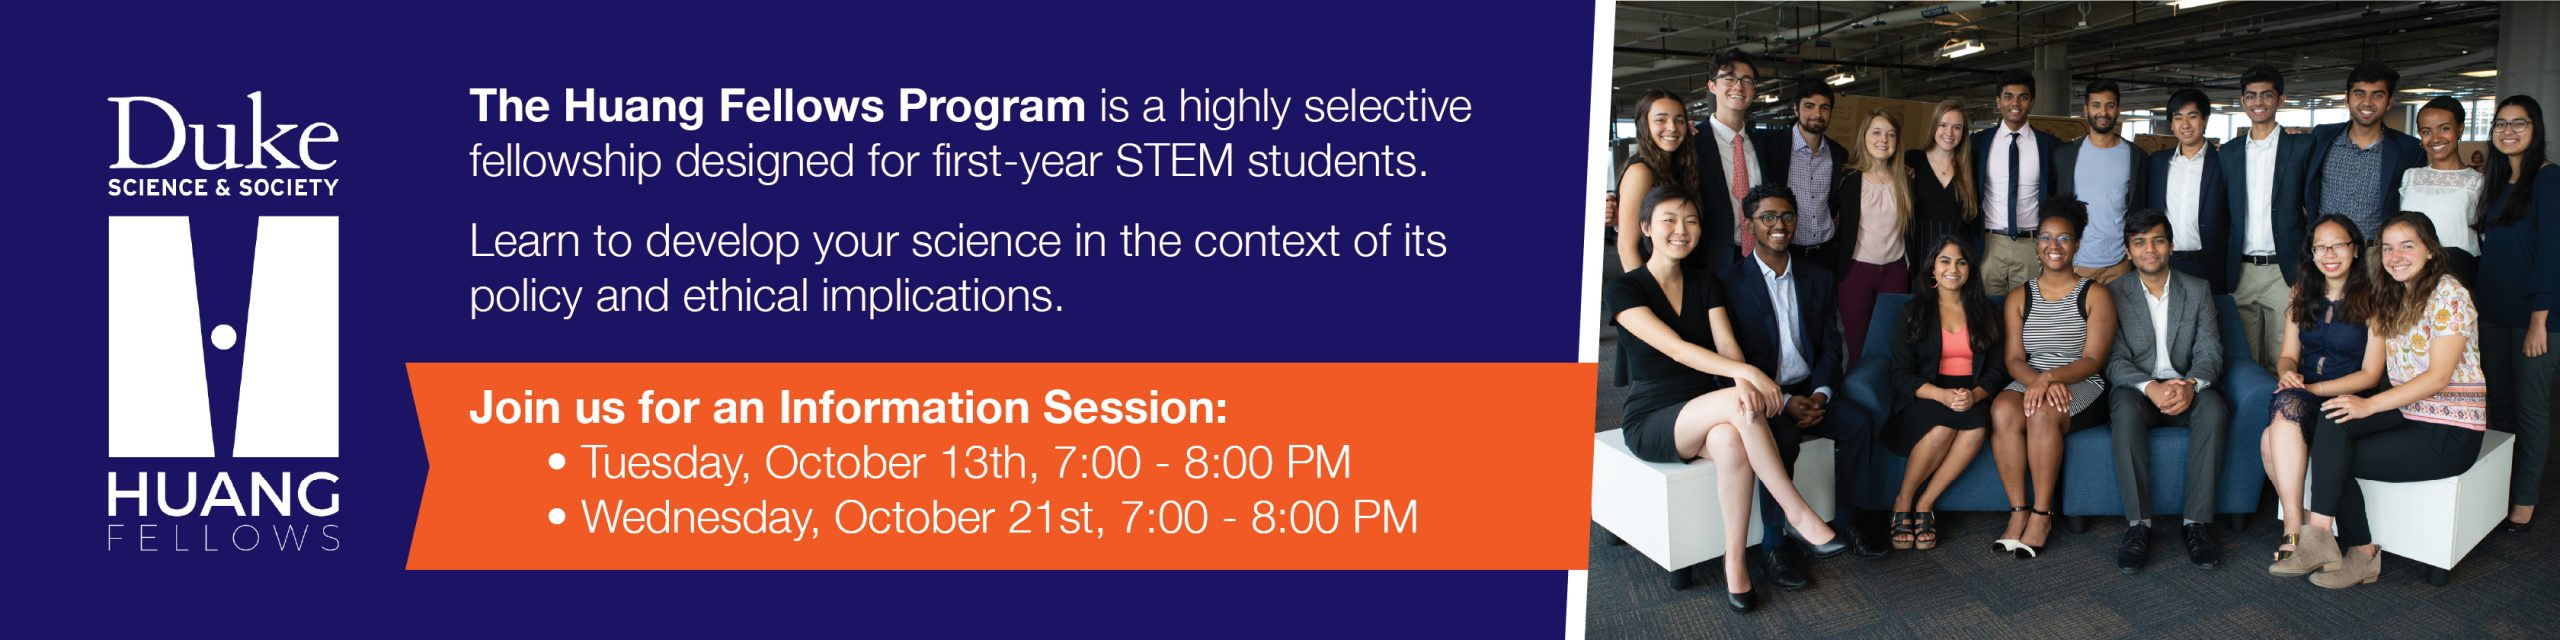 Join us for a Huang Fellow Info session on 10/13 or 10/21